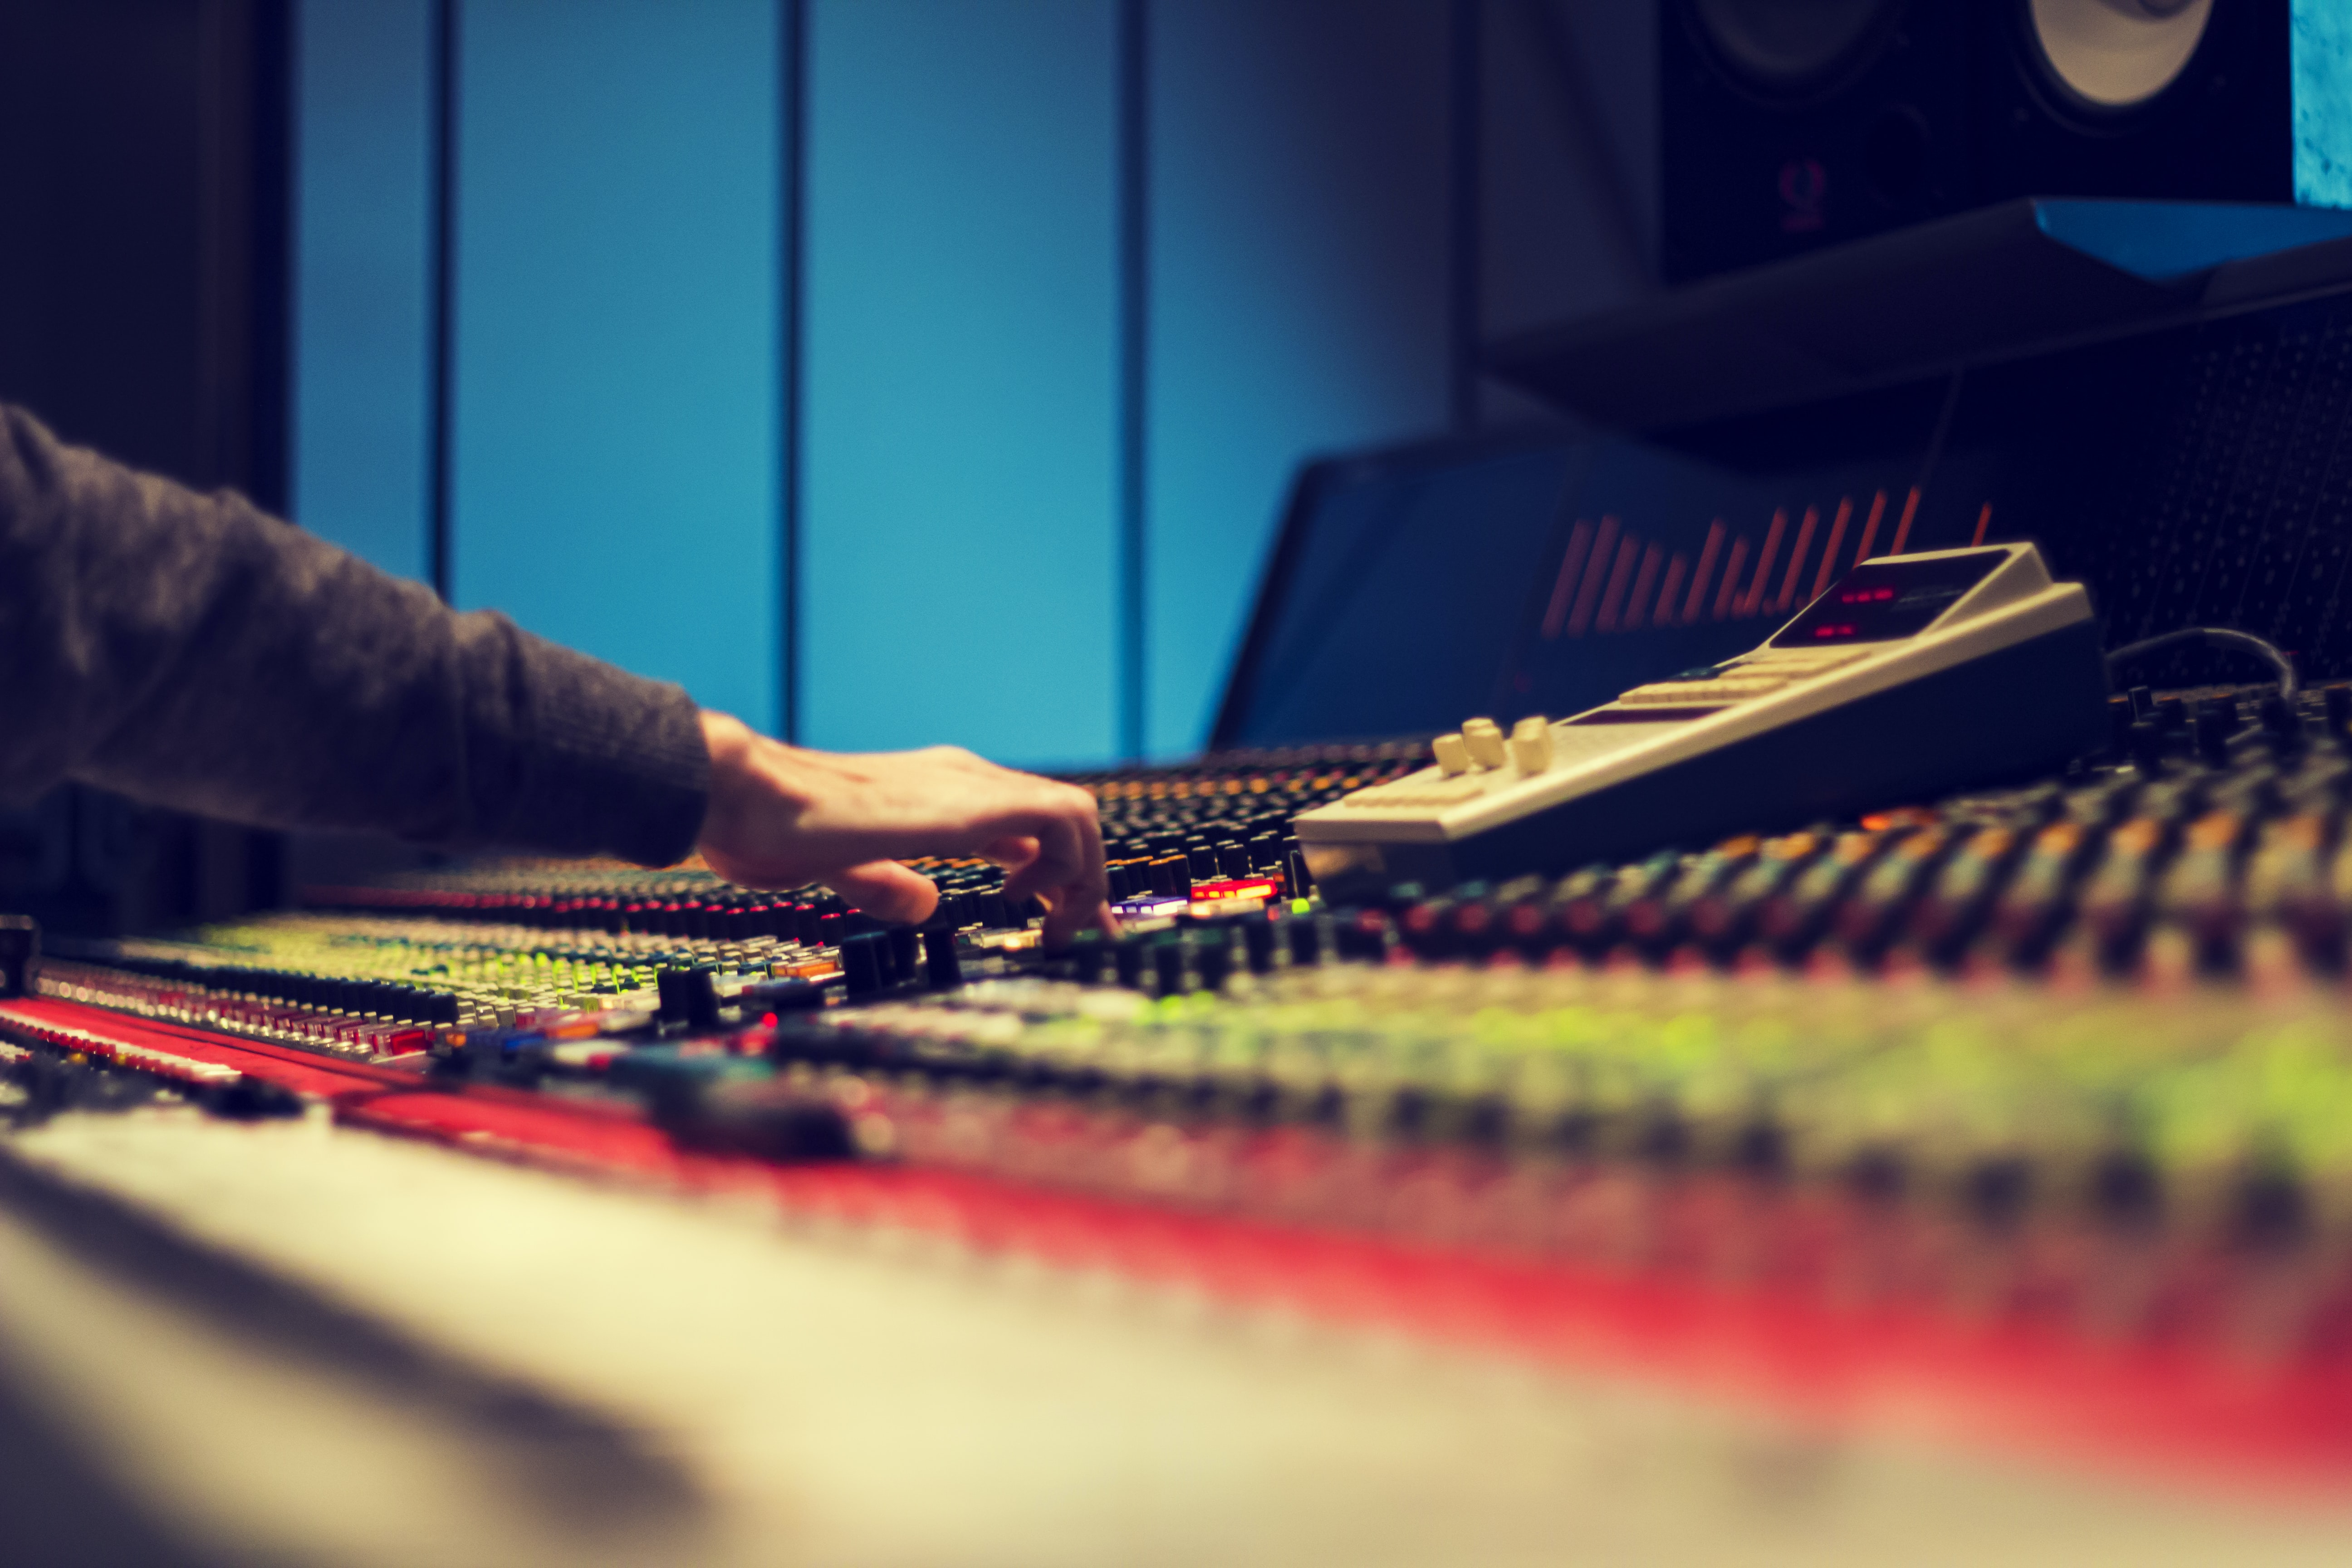 A close-up of the hand of a sound engineer making adjustments on the soundboard.